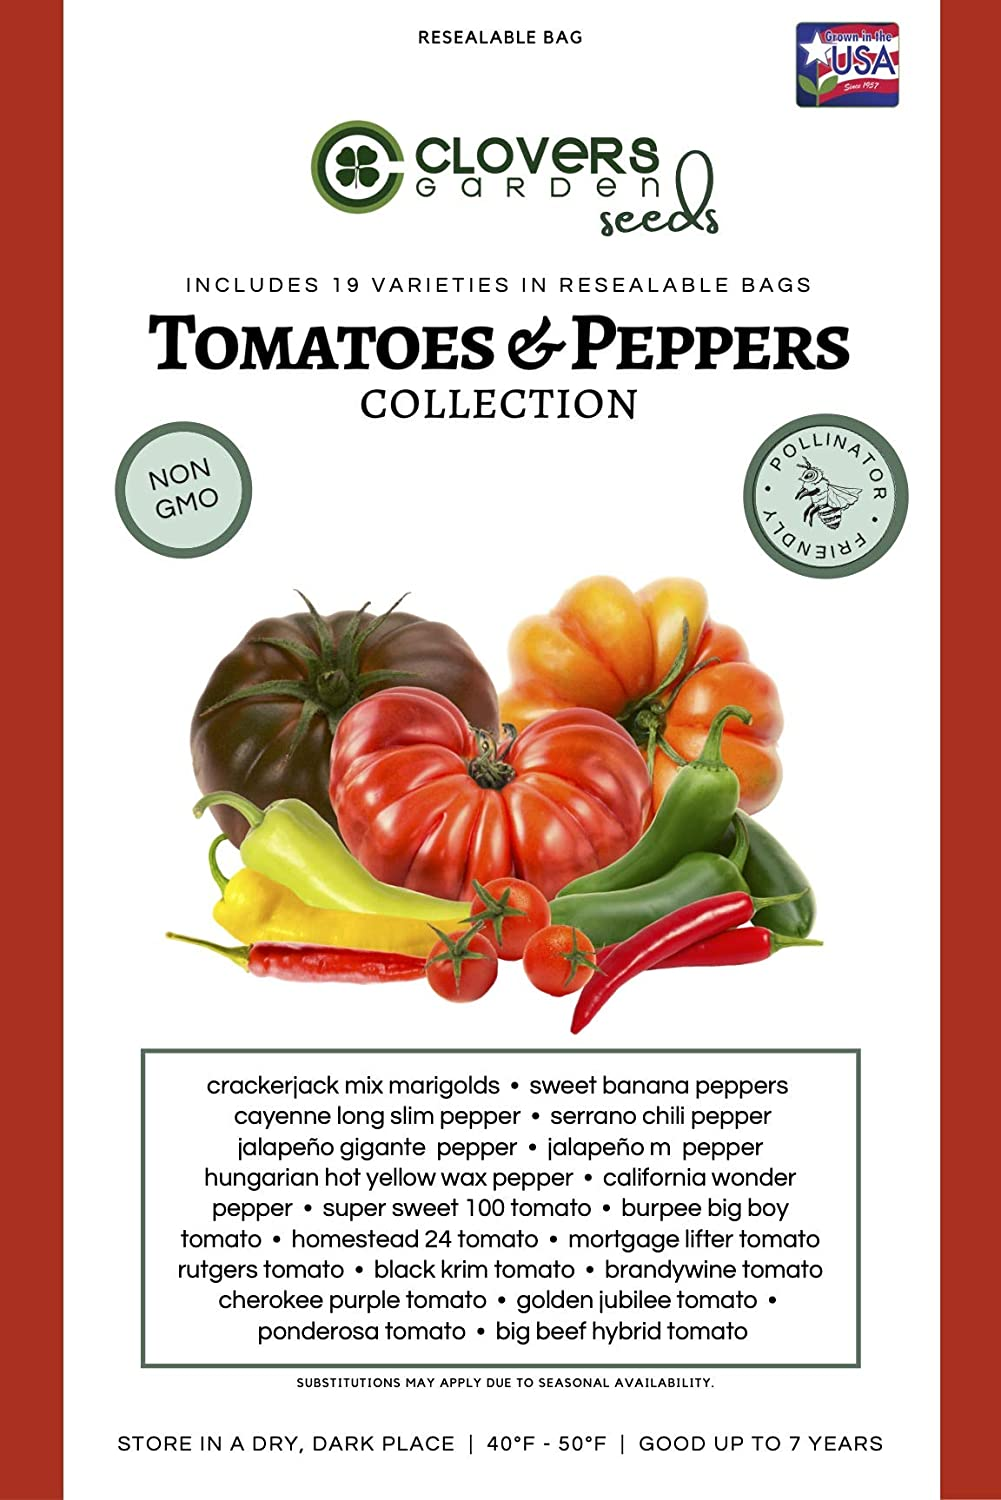 Clovers Garden Tomatoes and Peppers Seed Kit – 19 Varieties, 100% Non GMO Open Pollinated Heirloom Seed Vault for Planting – USA Grown and Hand Packed Vegetable Seeds for Home or Survival Garden